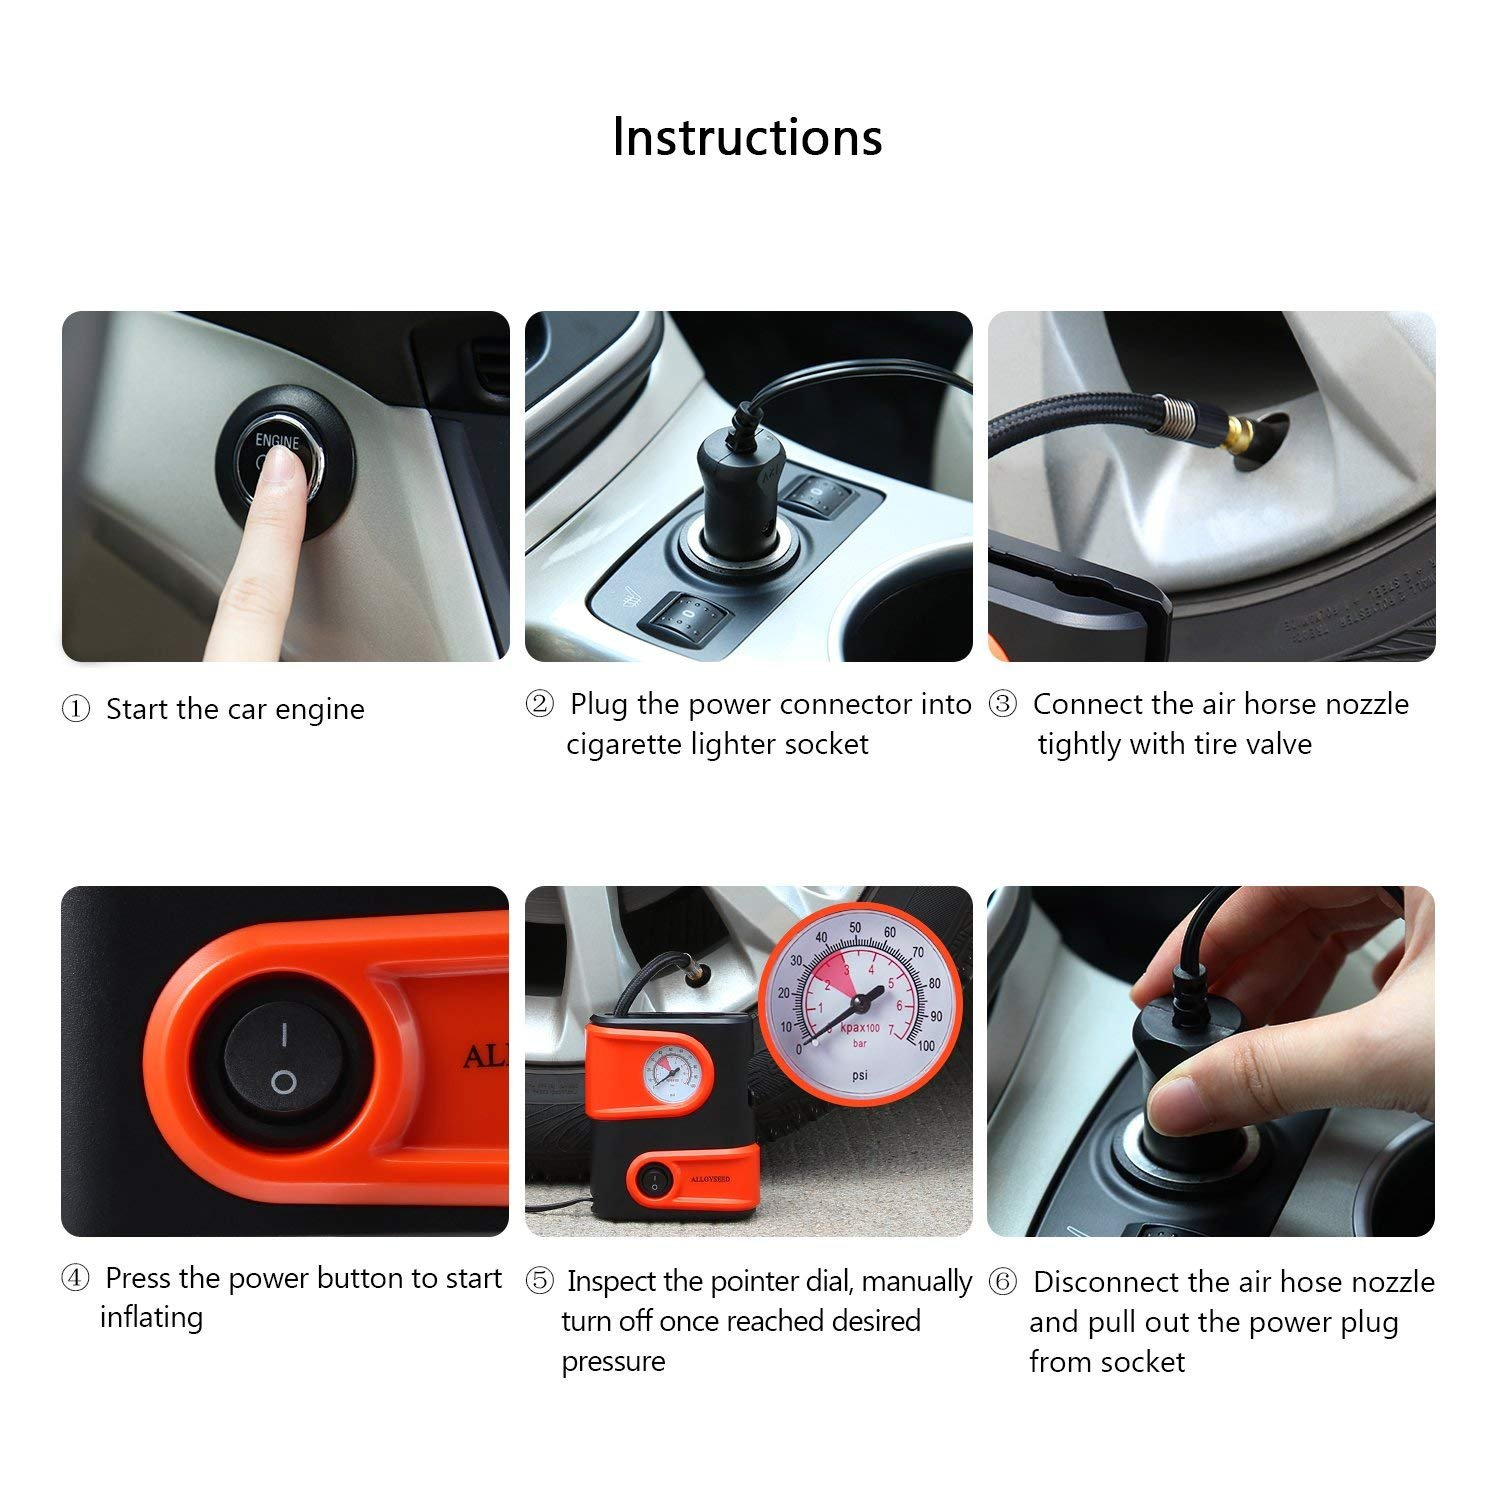 Alloyseed Portable Tire Inflator, Mini Air Compressor Pump with Built-in Gauge, 12V DC 100 PSI Tire Pump with Emergency Light for Car, Truck, Vehicle, Bicycle RV and Inflatables (Type1) by Alloyseed (Image #7)